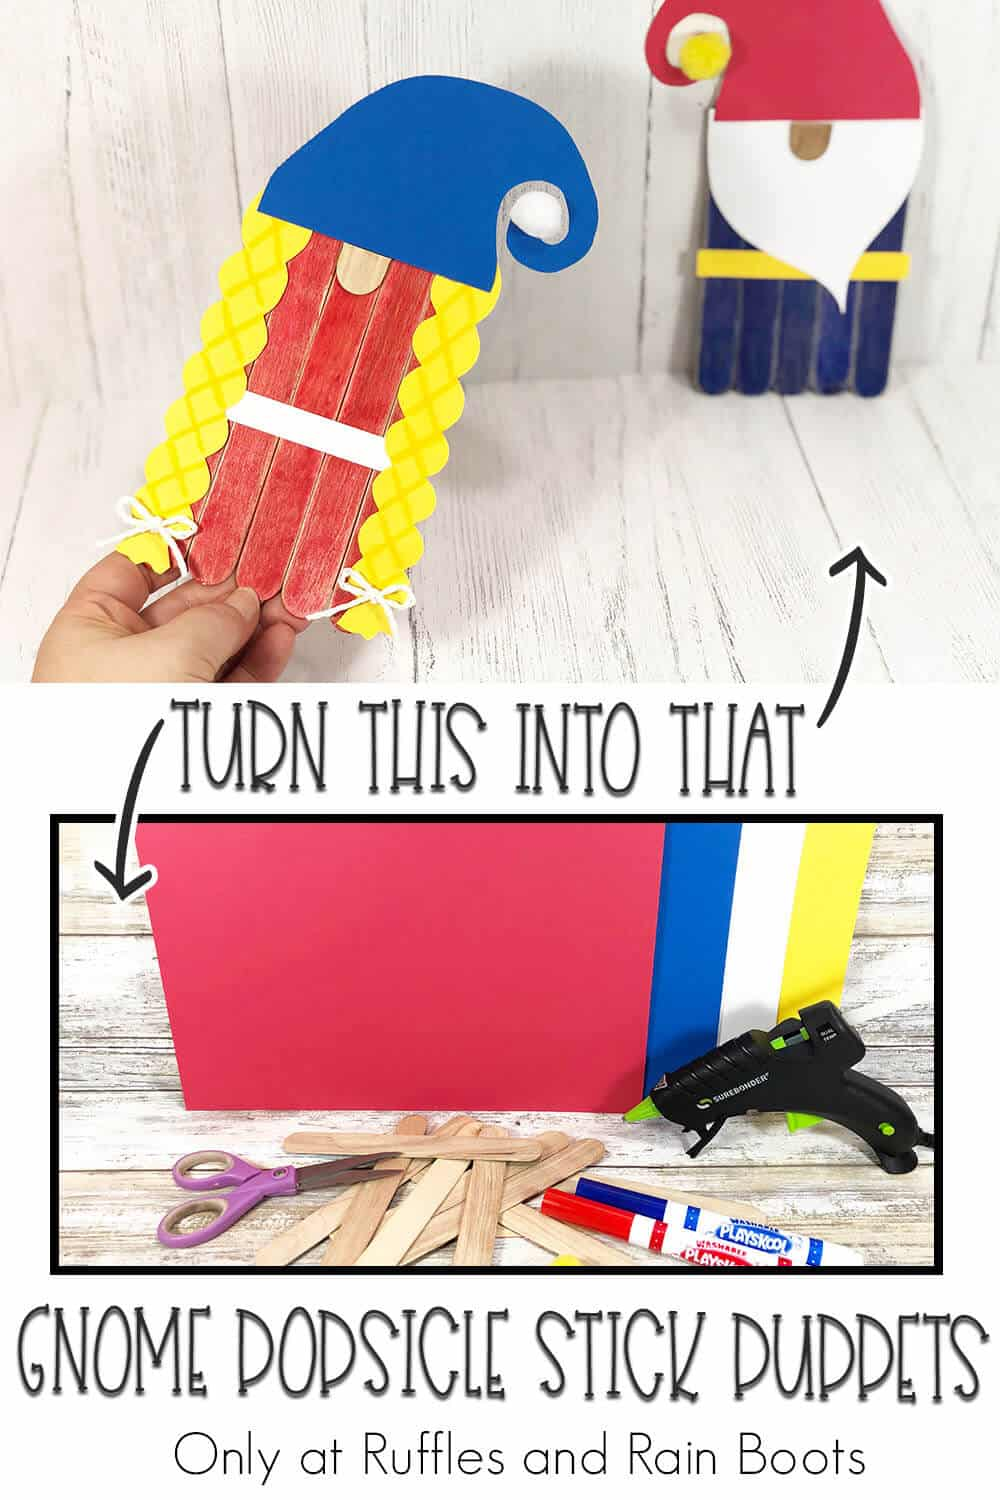 photo collage of easy kids craft gnome puppets from popsicle sticks with text which reads turn this into that gnome popsicle stick puppets